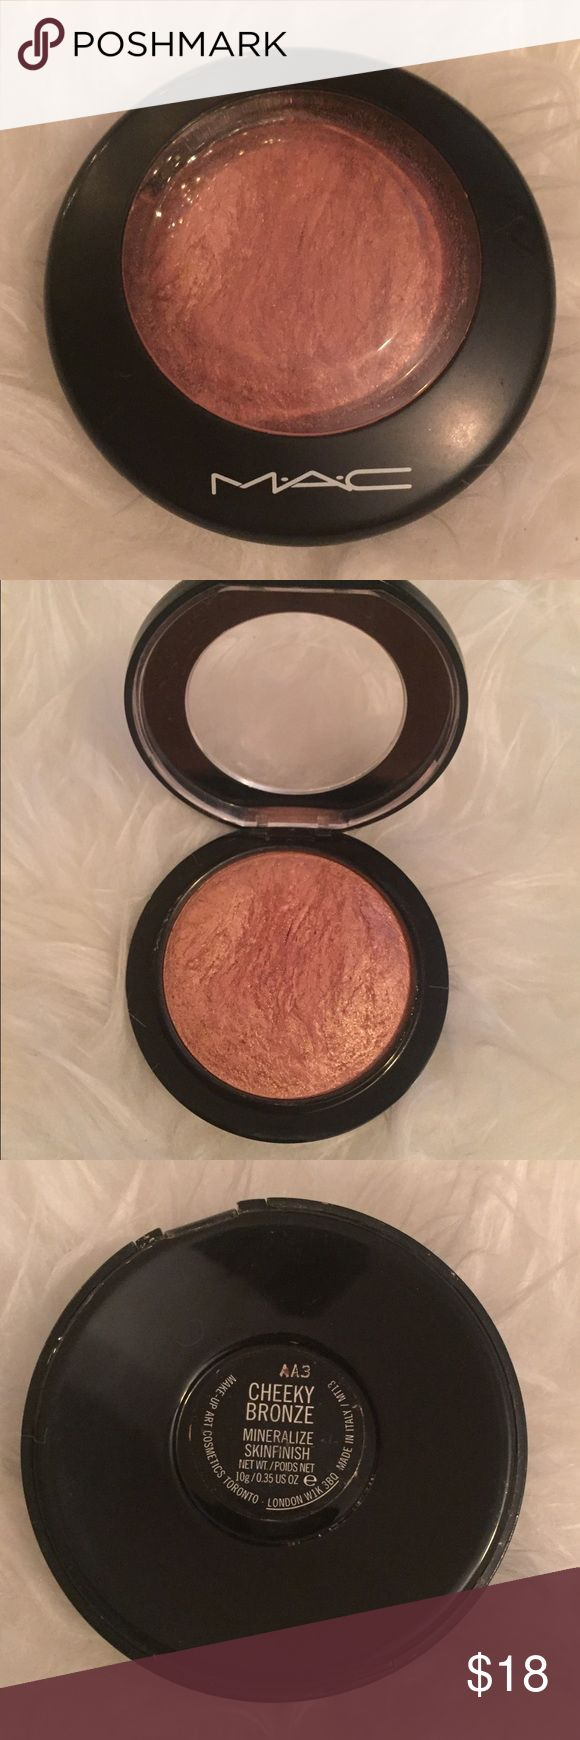 💯 Authentic MAC Cheeky Bronze MSF ✨ MAC Cheeky Bronze MSF ... Brand new never used only swatched 🤗 MAC Cosmetics Makeup Luminizer